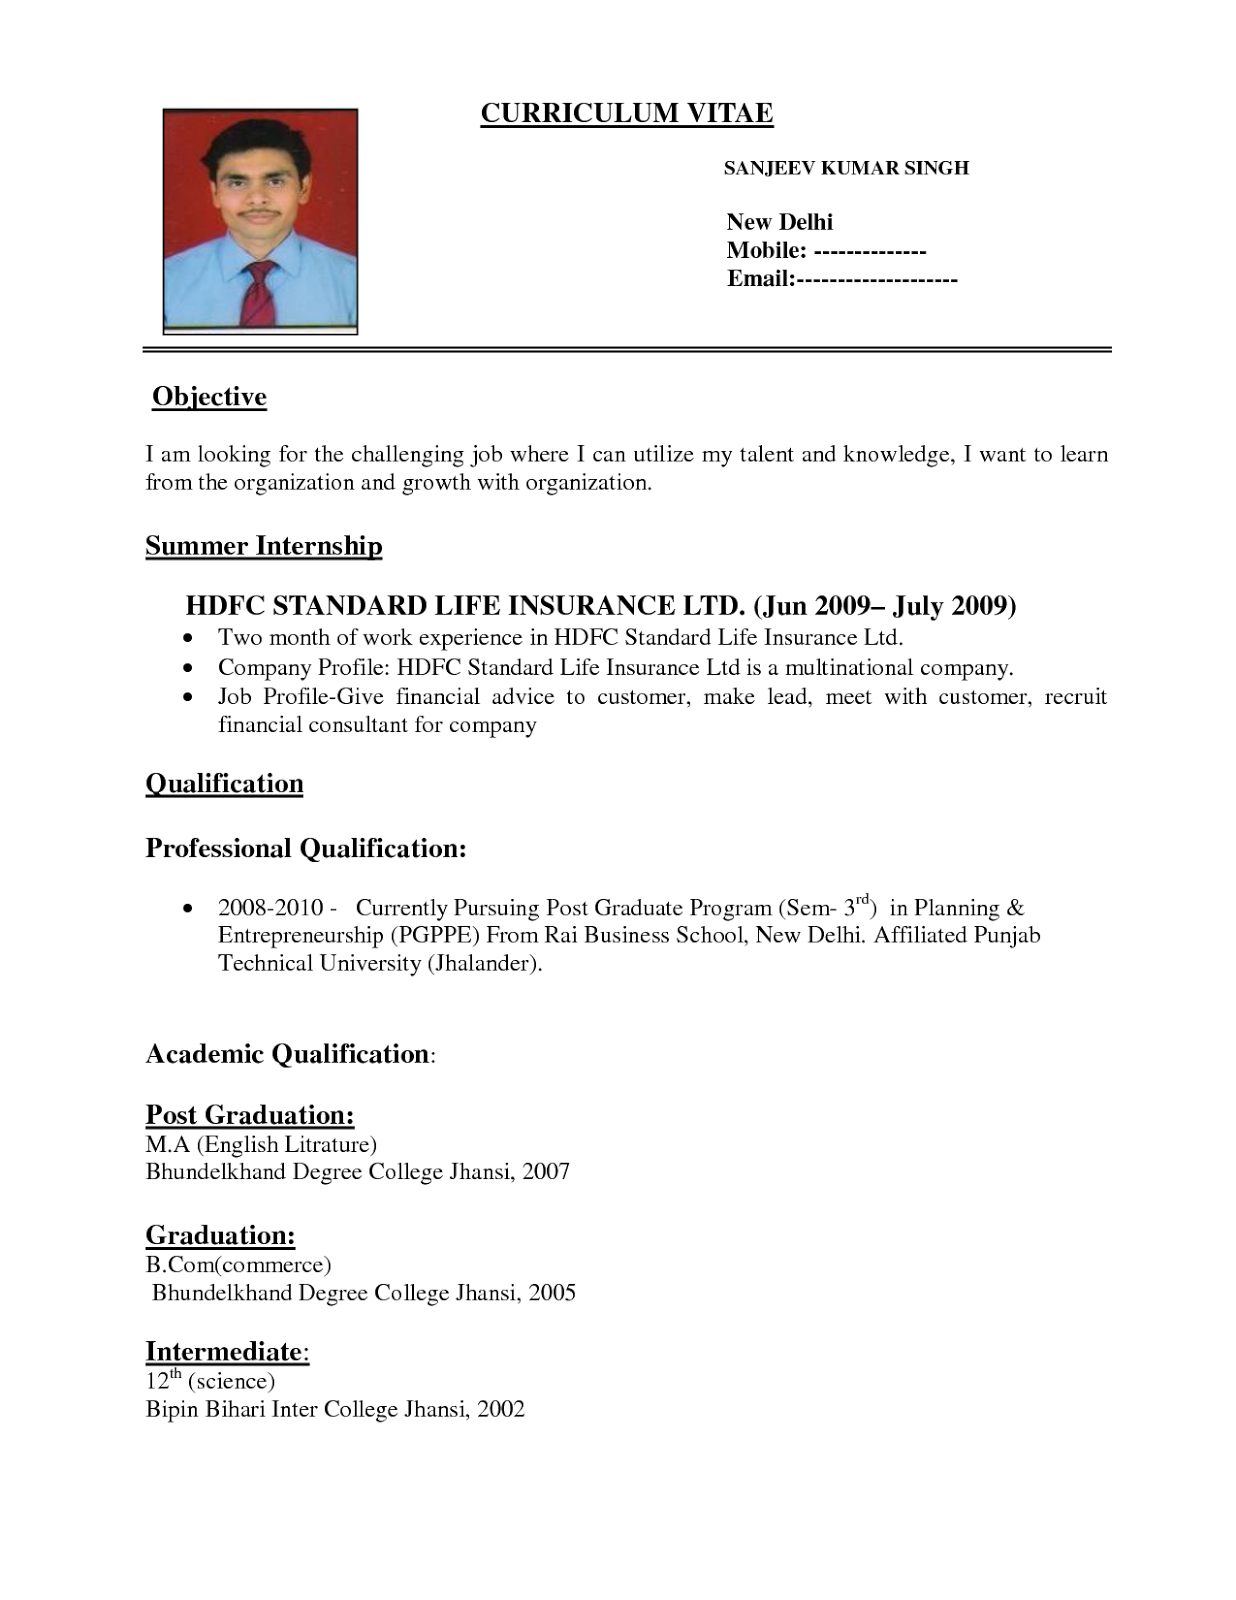 Funtional resume template